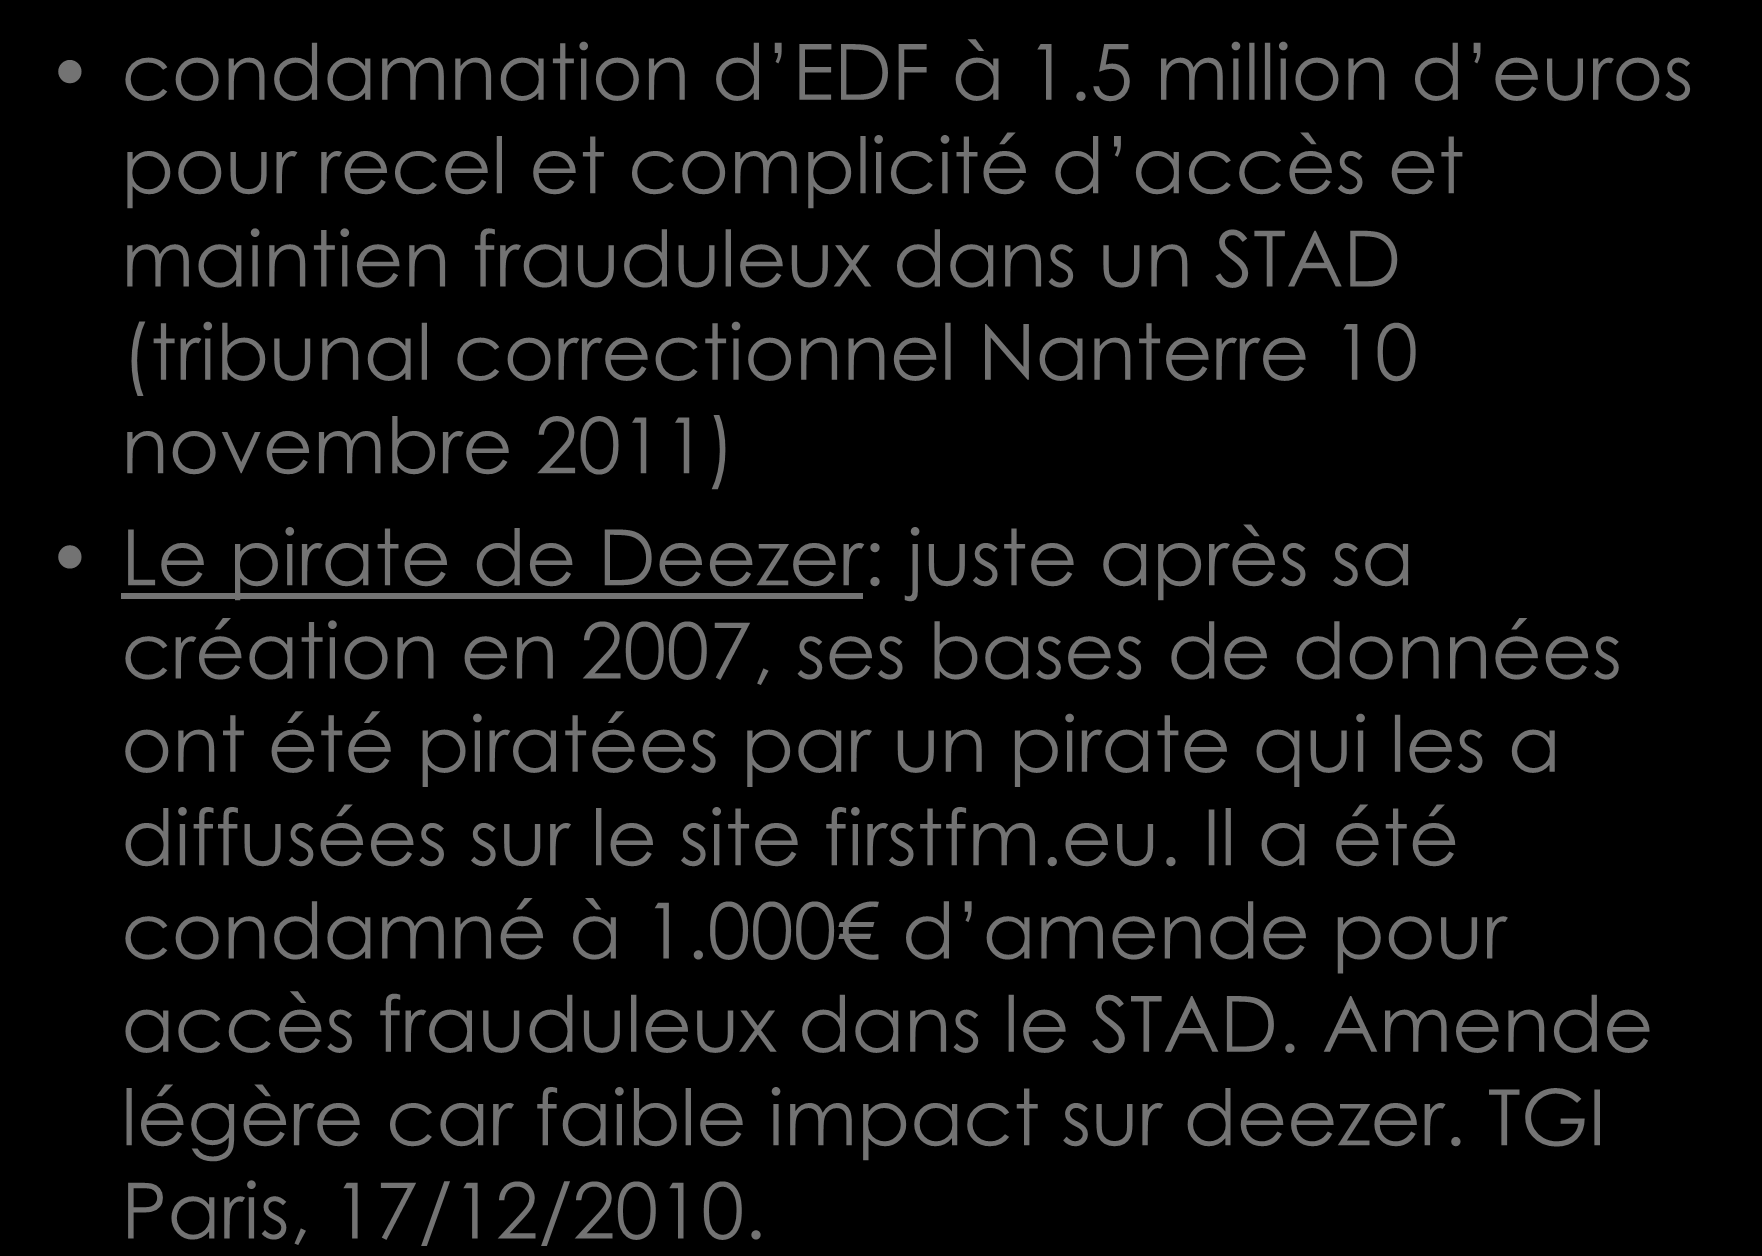 condamnation d EDF à 1.